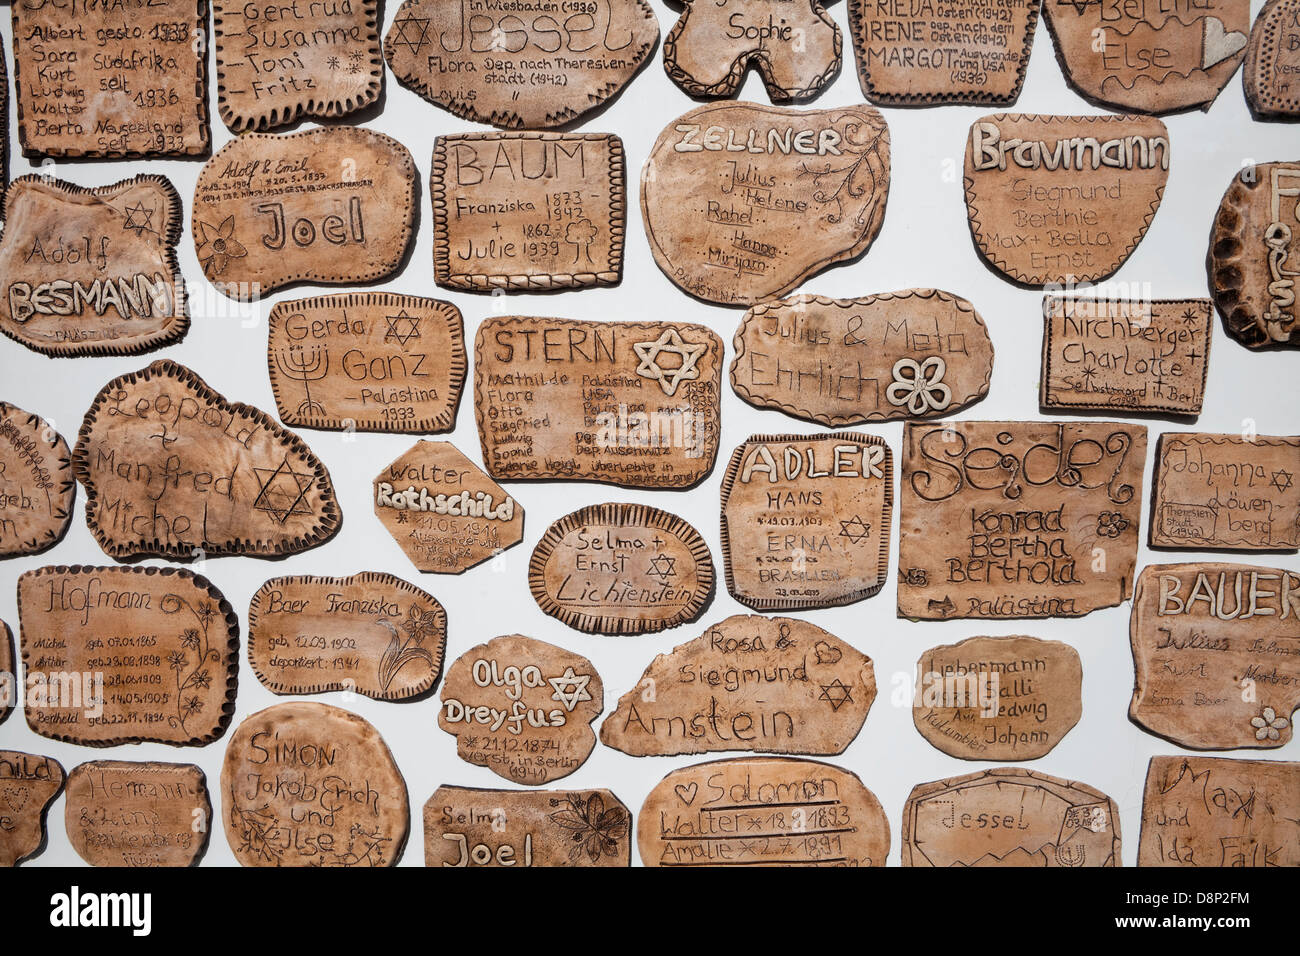 Clay tablets with names of Jews from Weilburg, 1918 to 1945, Weilburg an der Lahn, Hesse, Germany, Europe - Stock Image